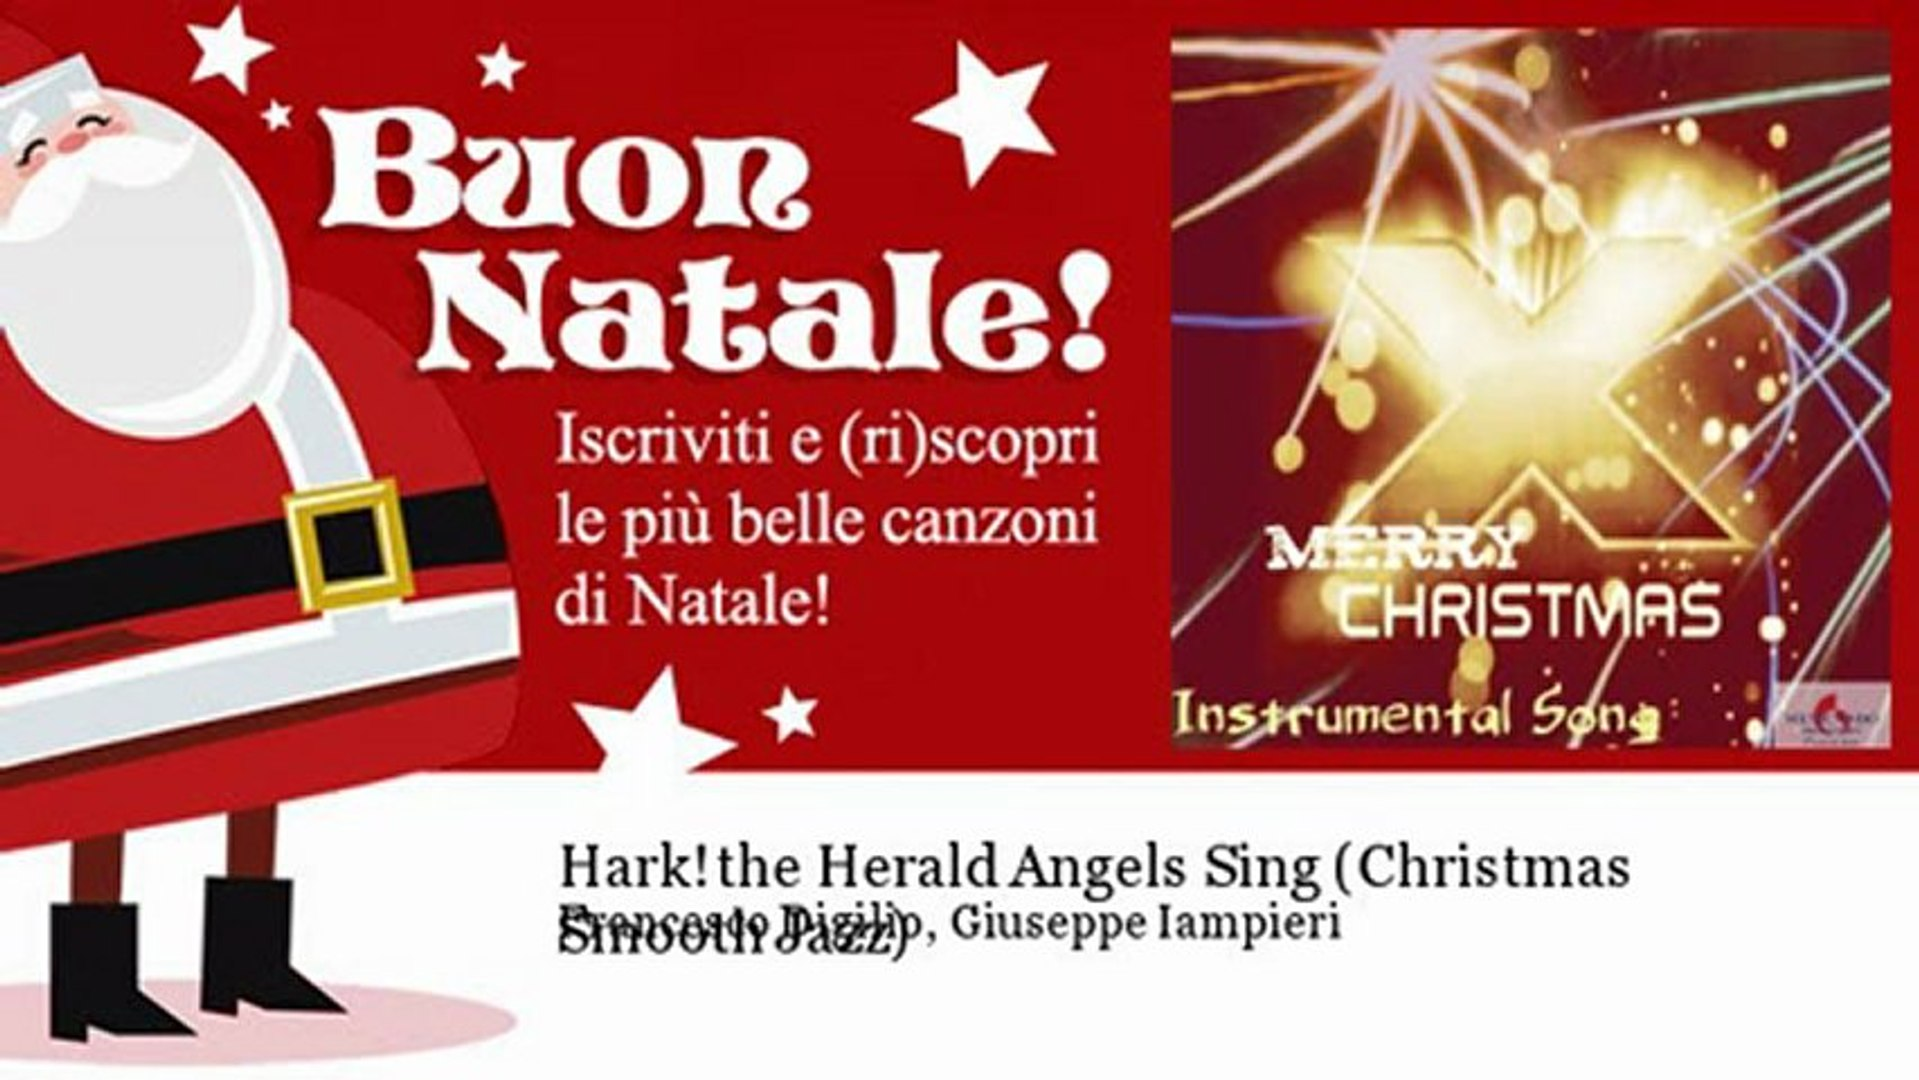 Francesco Digilio, Giuseppe Iampieri - Hark! the Herald Angels Sing - Christmas Smooth Jazz - Natale